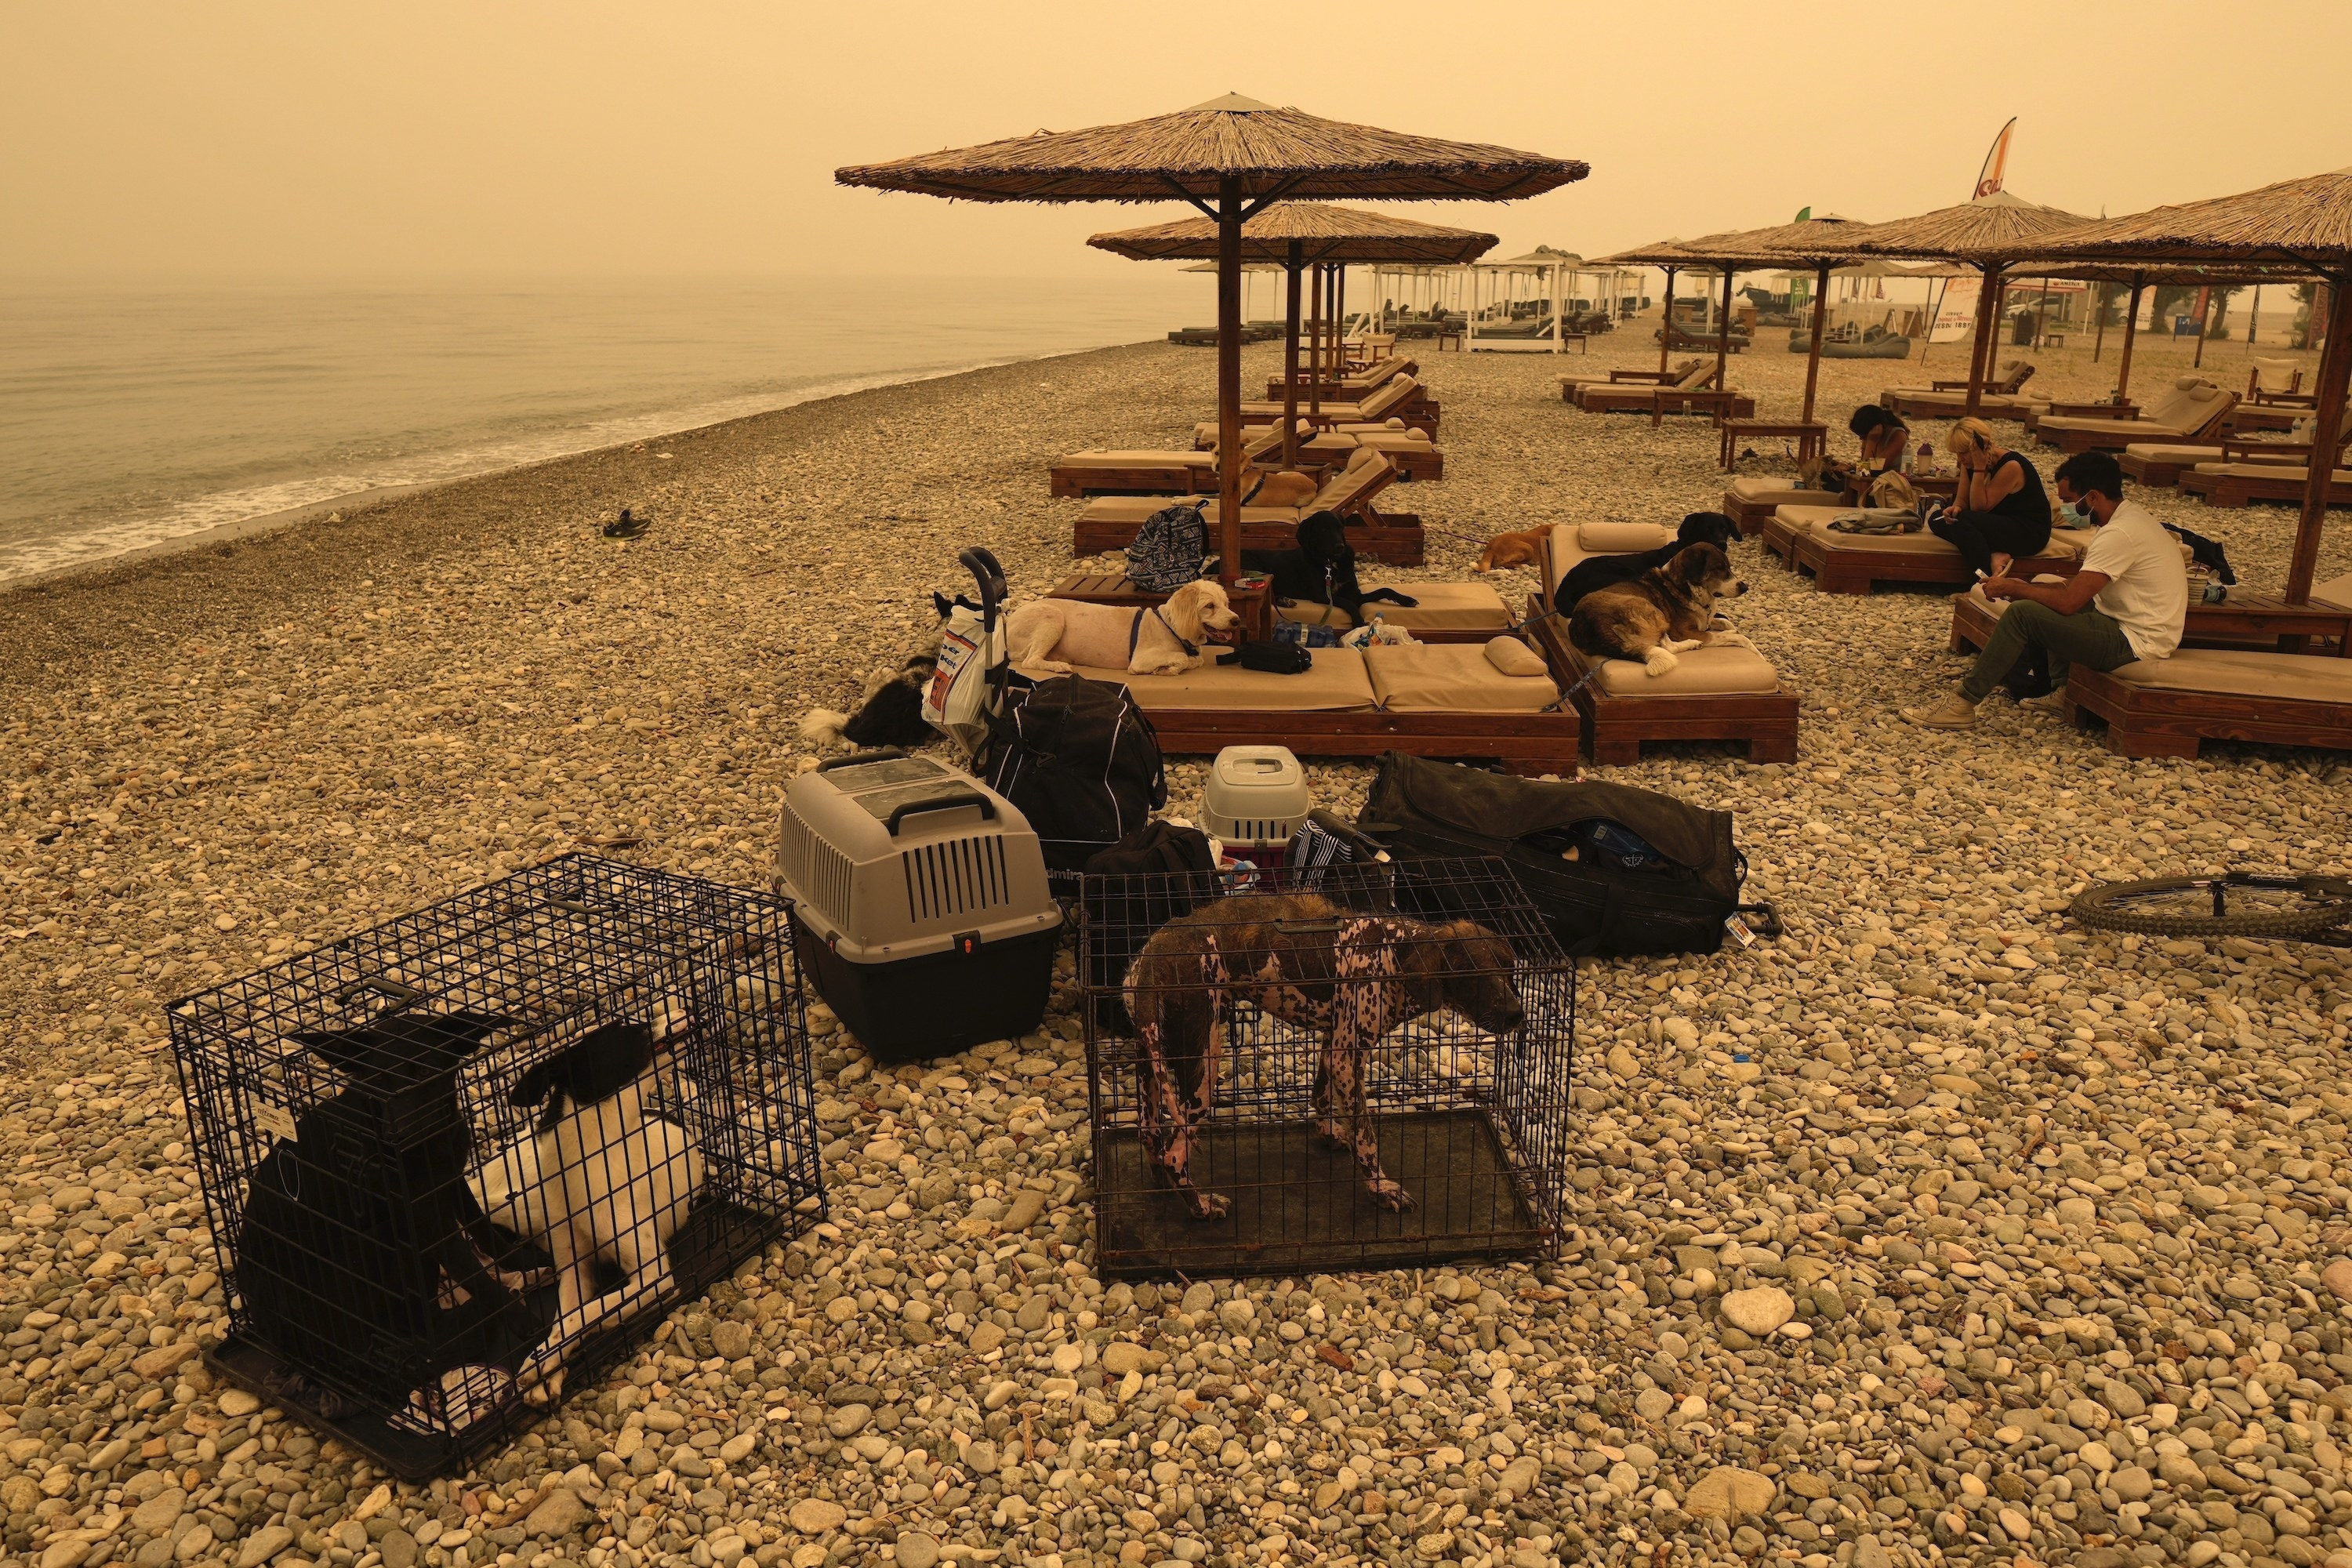 Dogs are contained in crates and lying on beach chairs on a rocky shore under a hazy sky